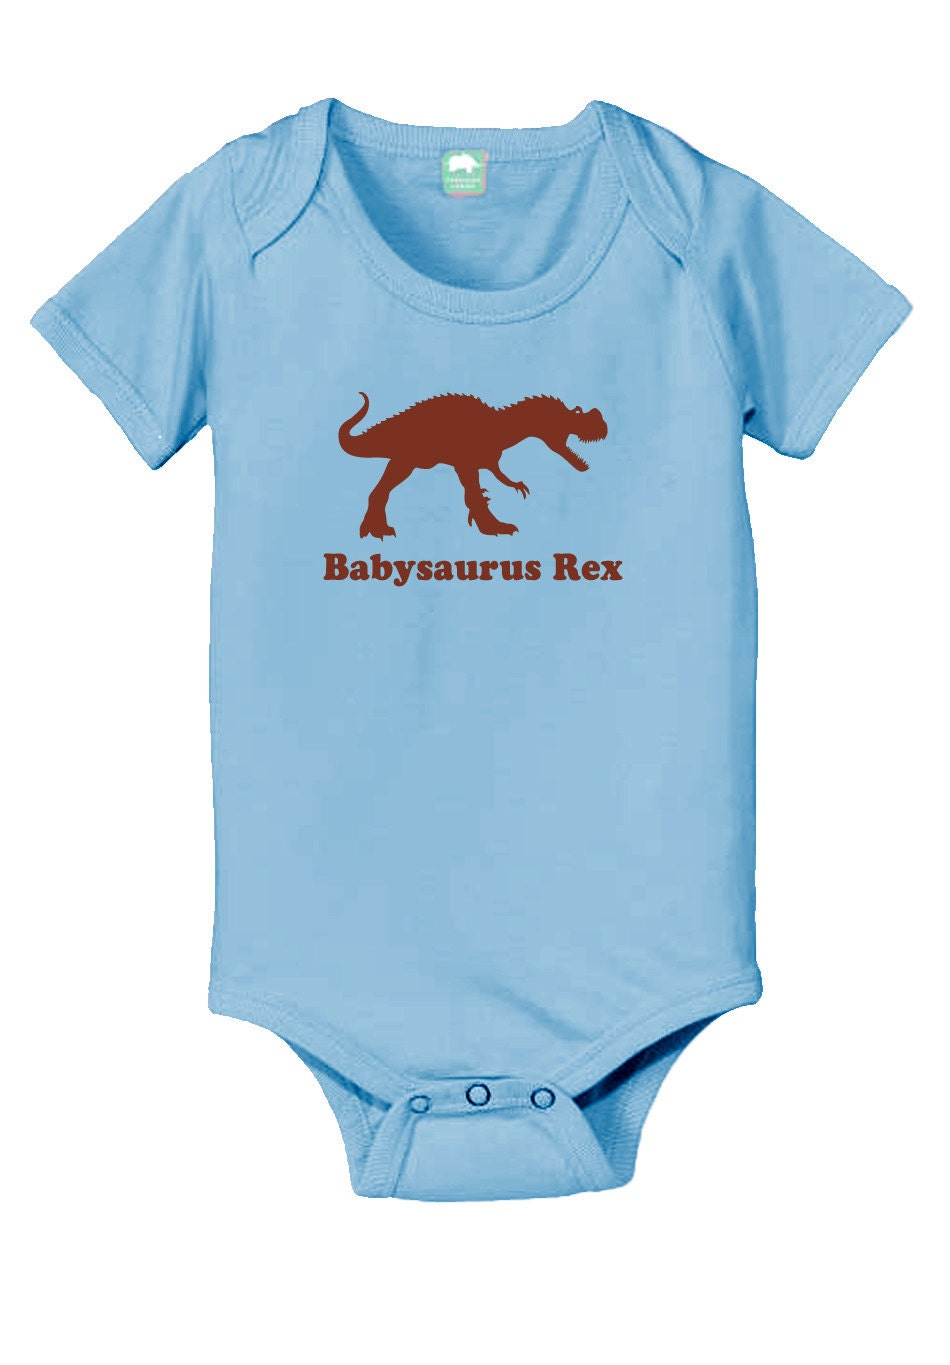 You searched for: baby onesies! Etsy is the home to thousands of handmade, vintage, and one-of-a-kind products and gifts related to your search. No matter what you're looking for or where you are in the world, our global marketplace of sellers can help you find unique and affordable options. Let's get started!